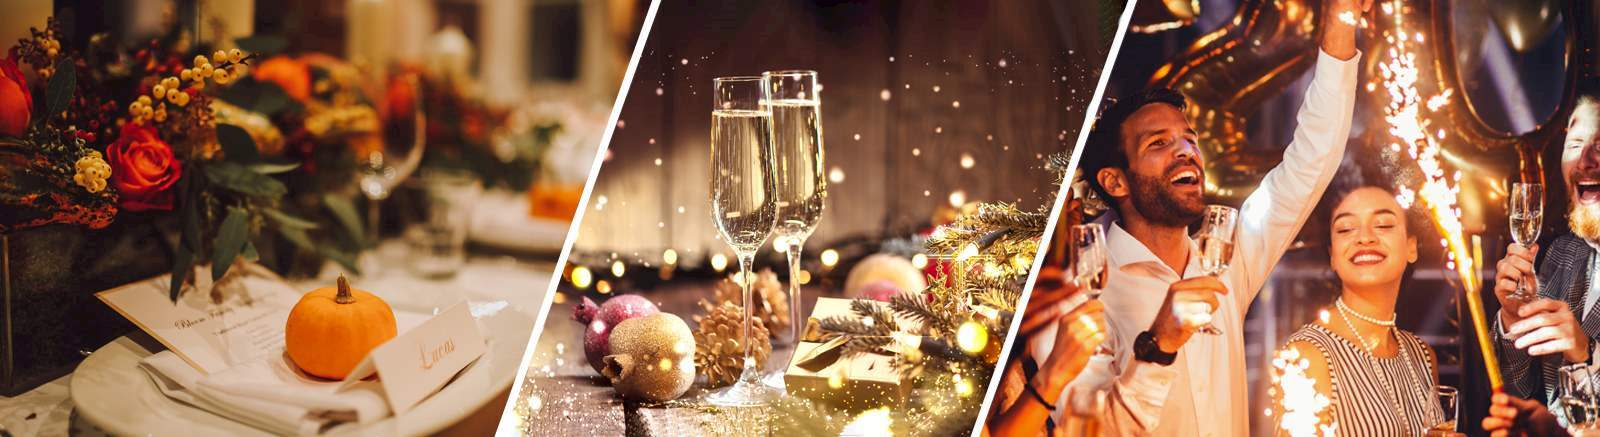 Plan your holiday event